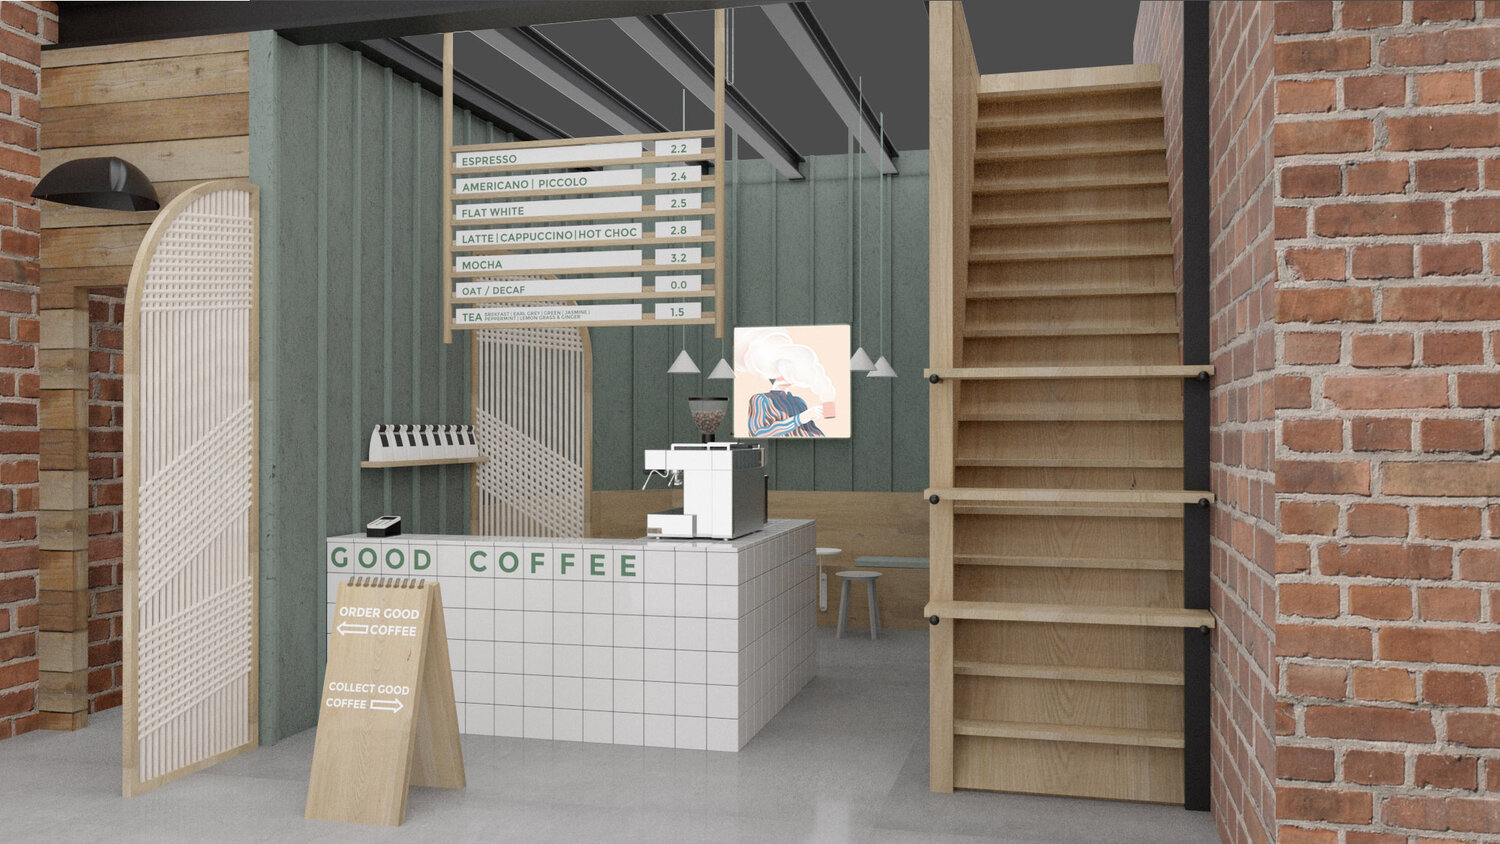 lunarlunar_interior_design_cafe_good_coffee_route 2_maltby_street_counter.jpg